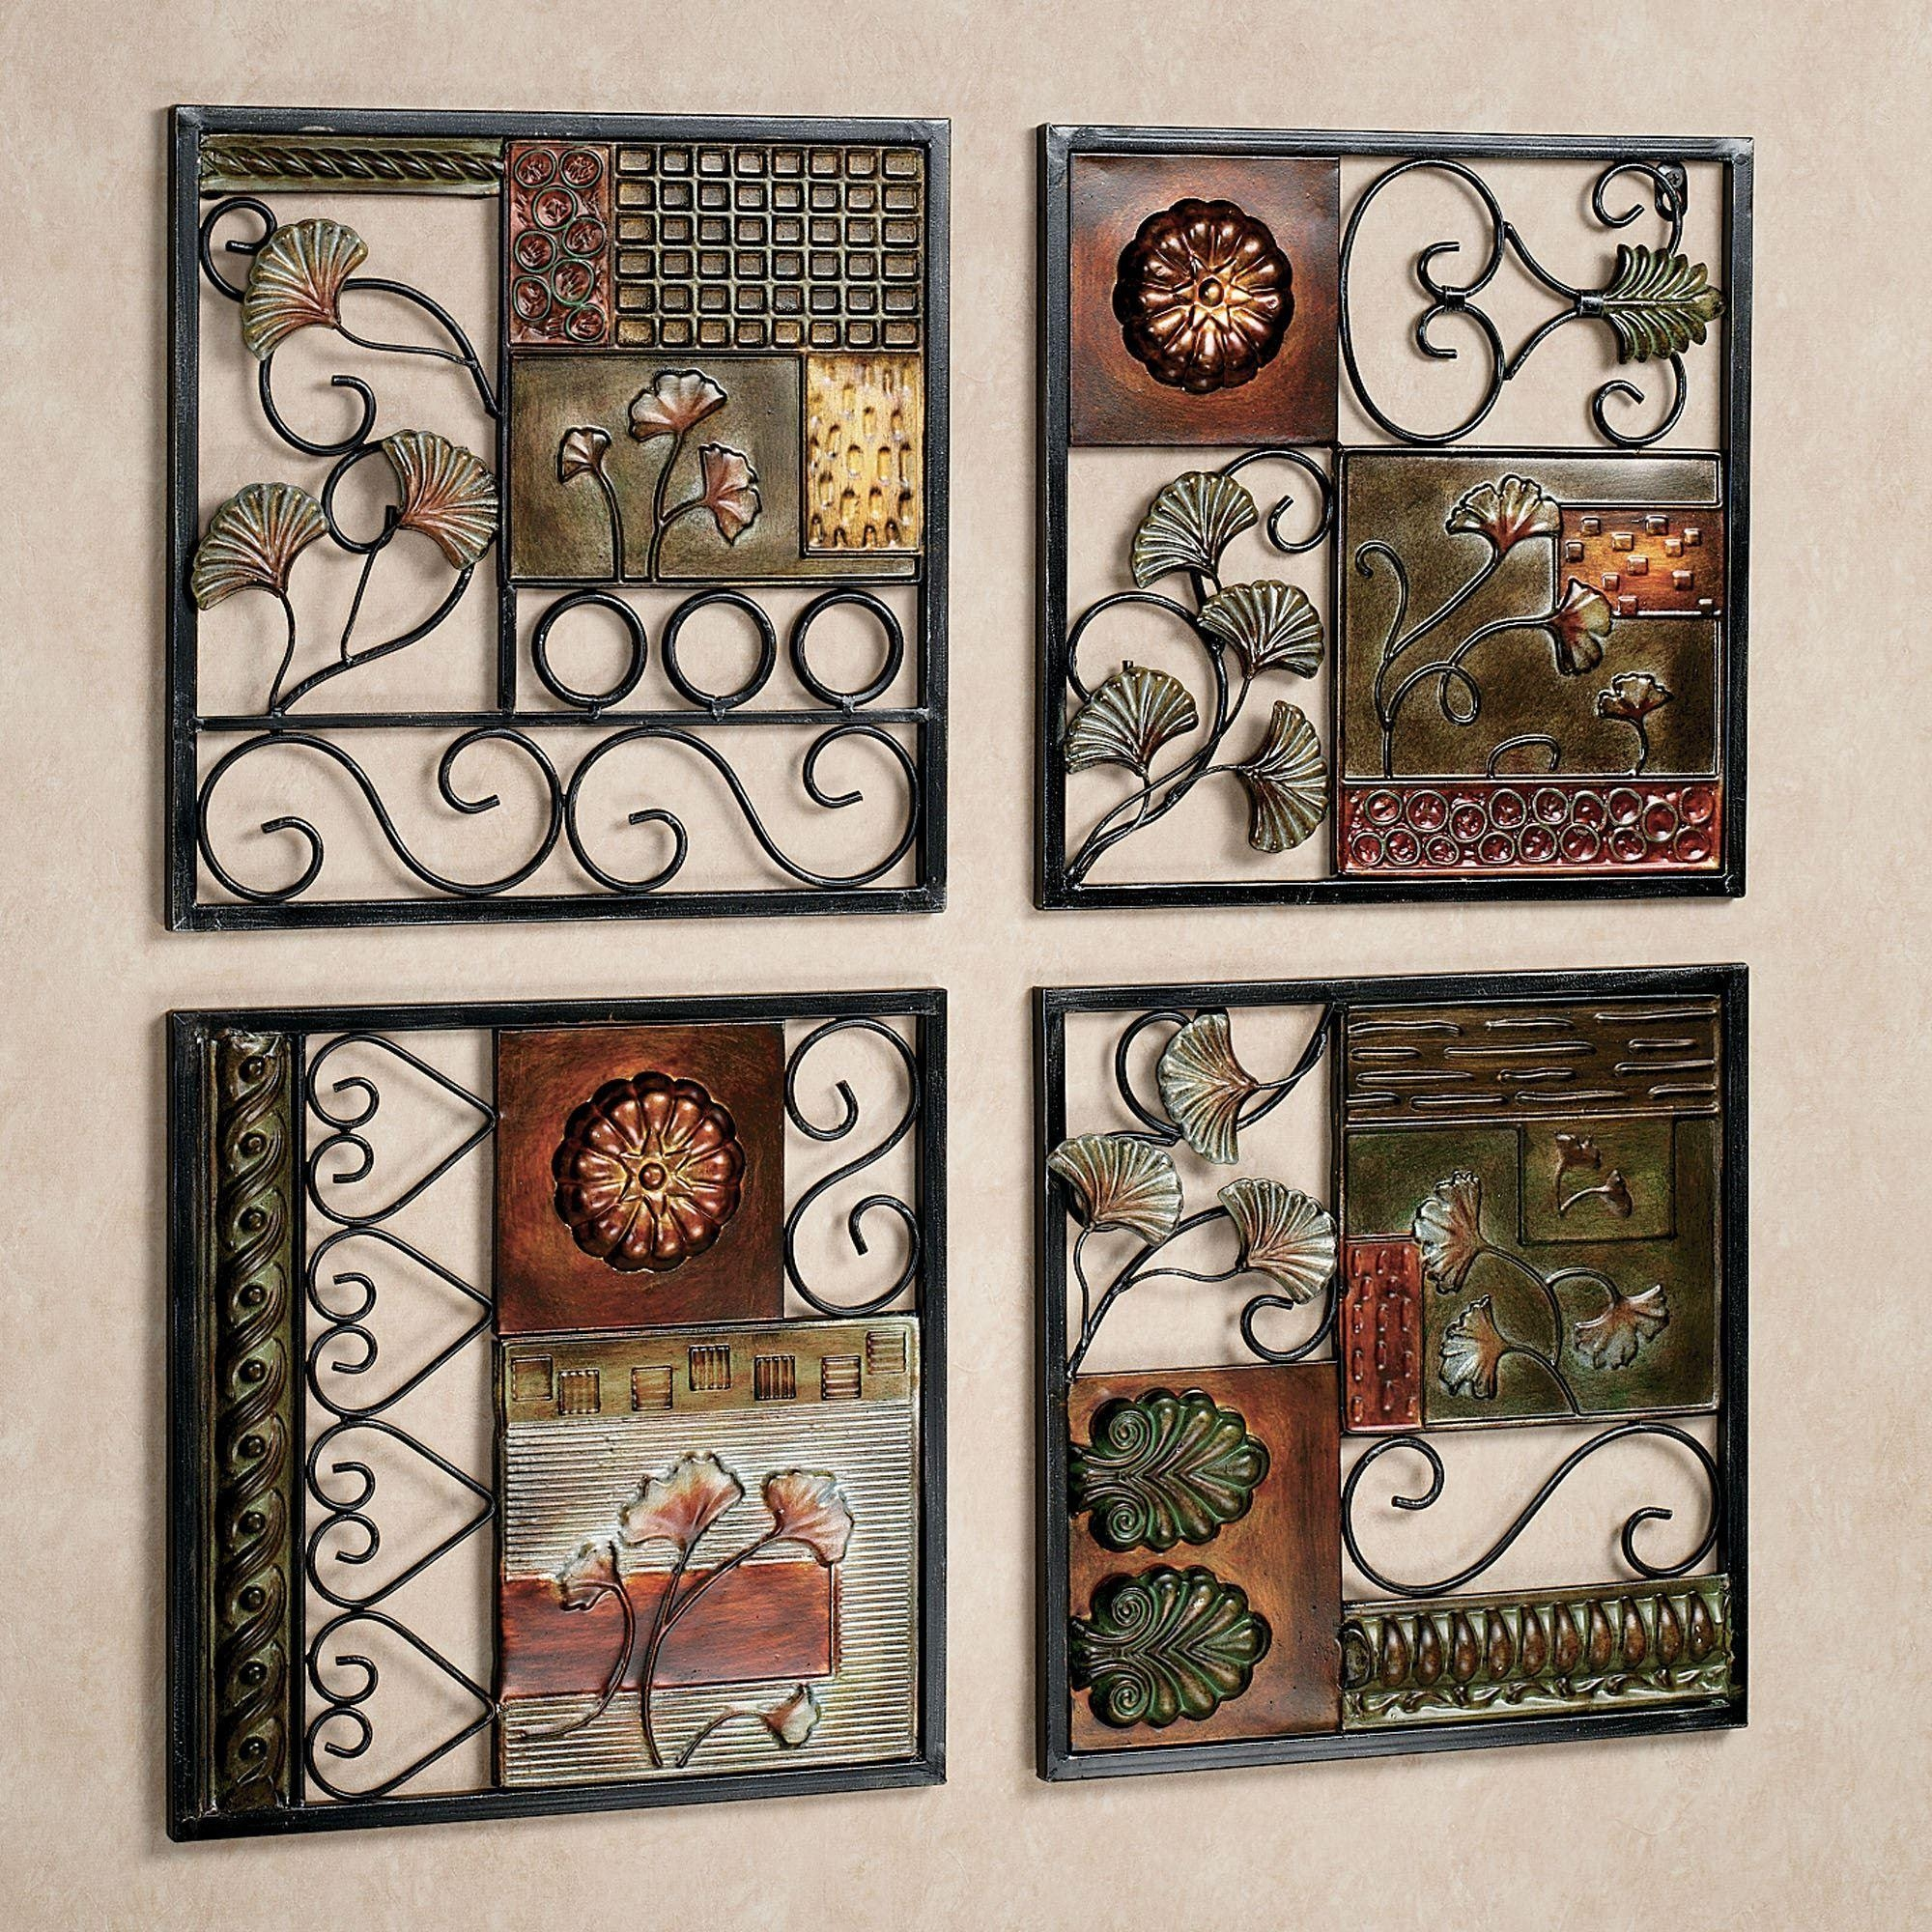 Wall Art, Metal Wall Art, Wooden Wall Art | Touch Of Class With Regard To Moroccan Metal Wall Art (View 9 of 20)